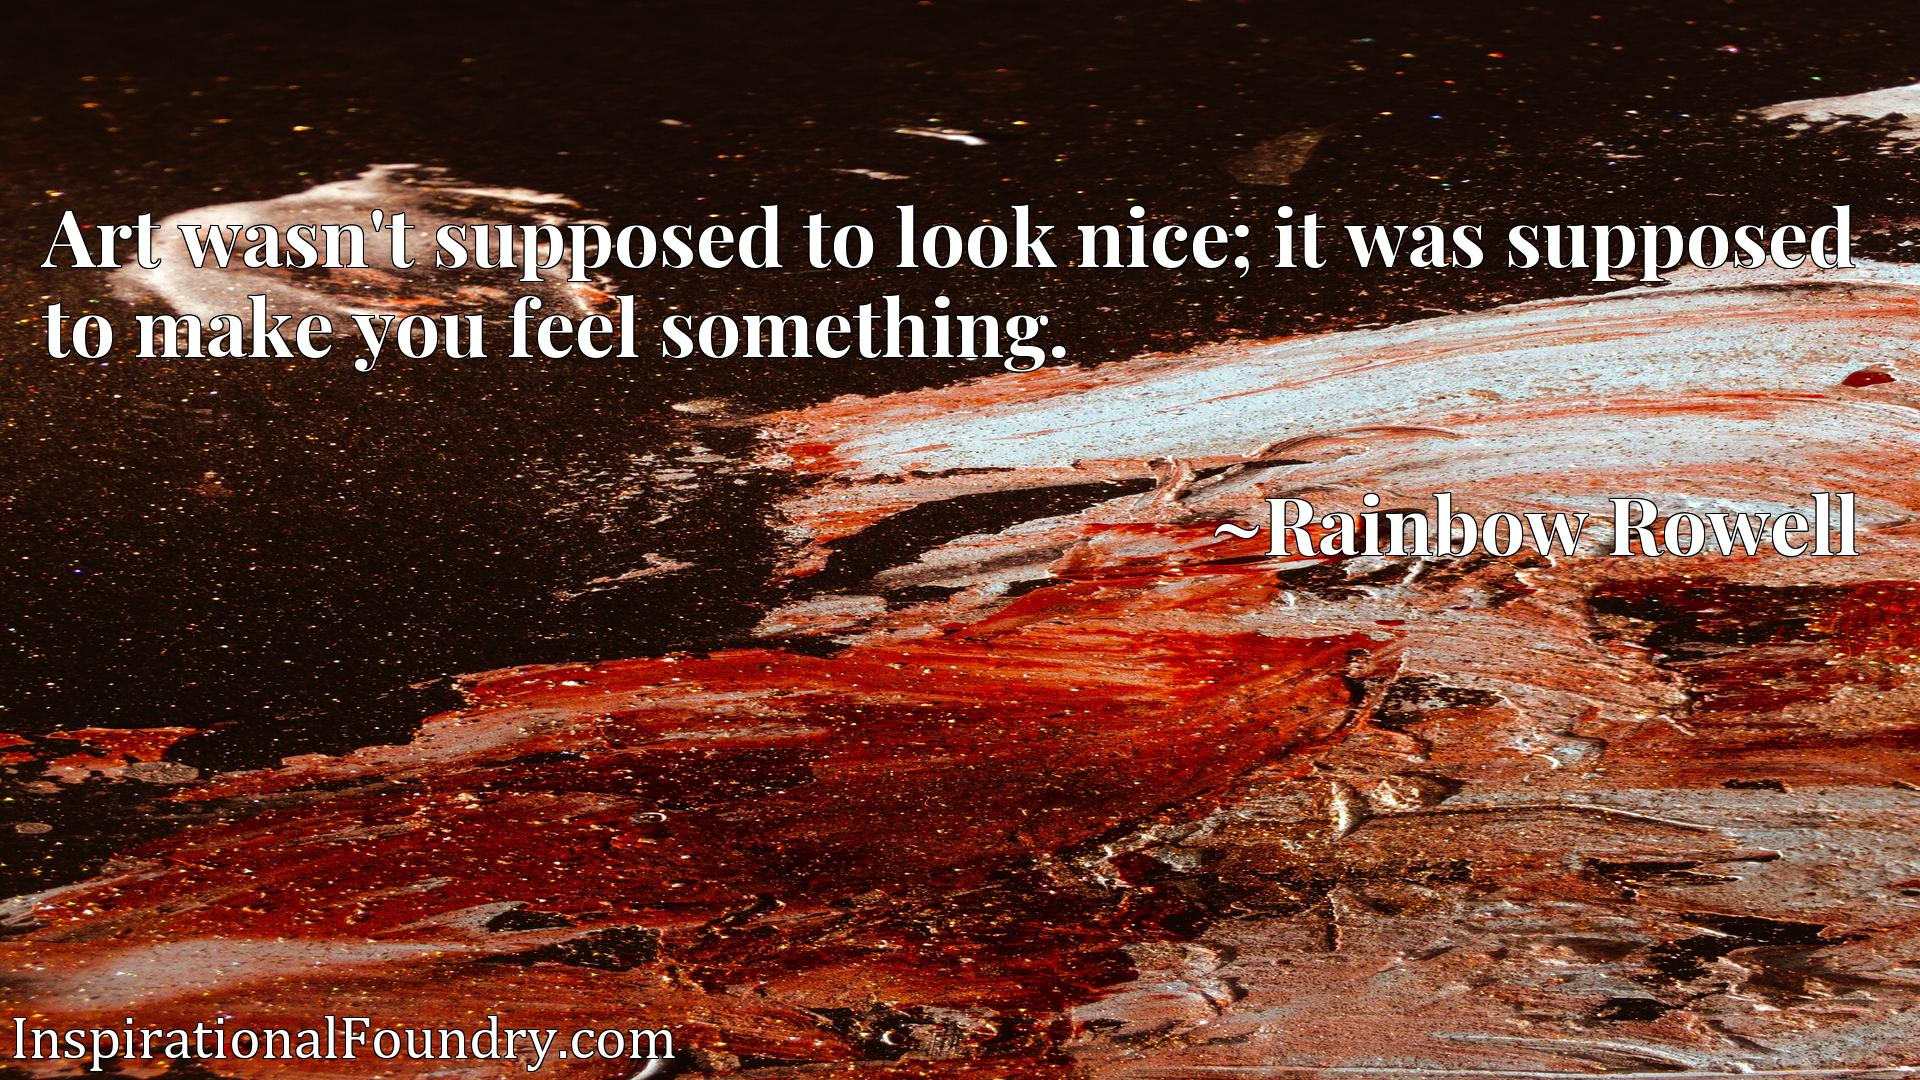 Art wasn't supposed to look nice; it was supposed to make you feel something.